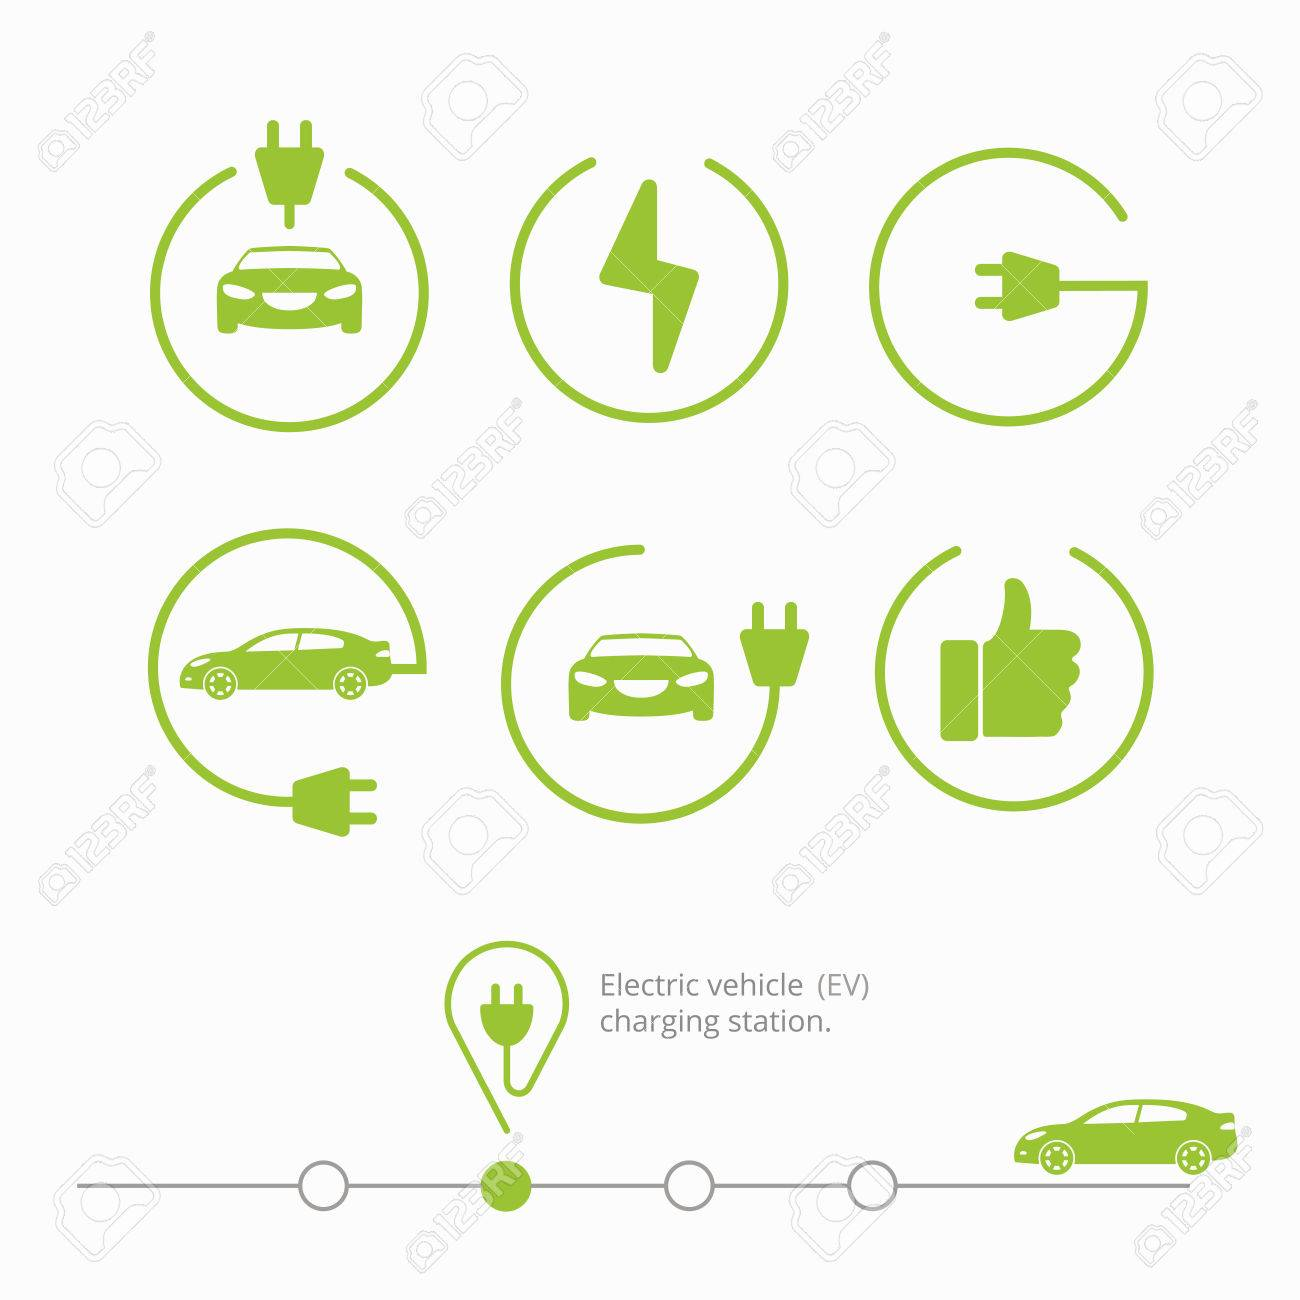 Icons Electric Vehicle Charging Station Isolated Electric Car Royalty Free Cliparts Vectors And Stock Illustration Image 63006817